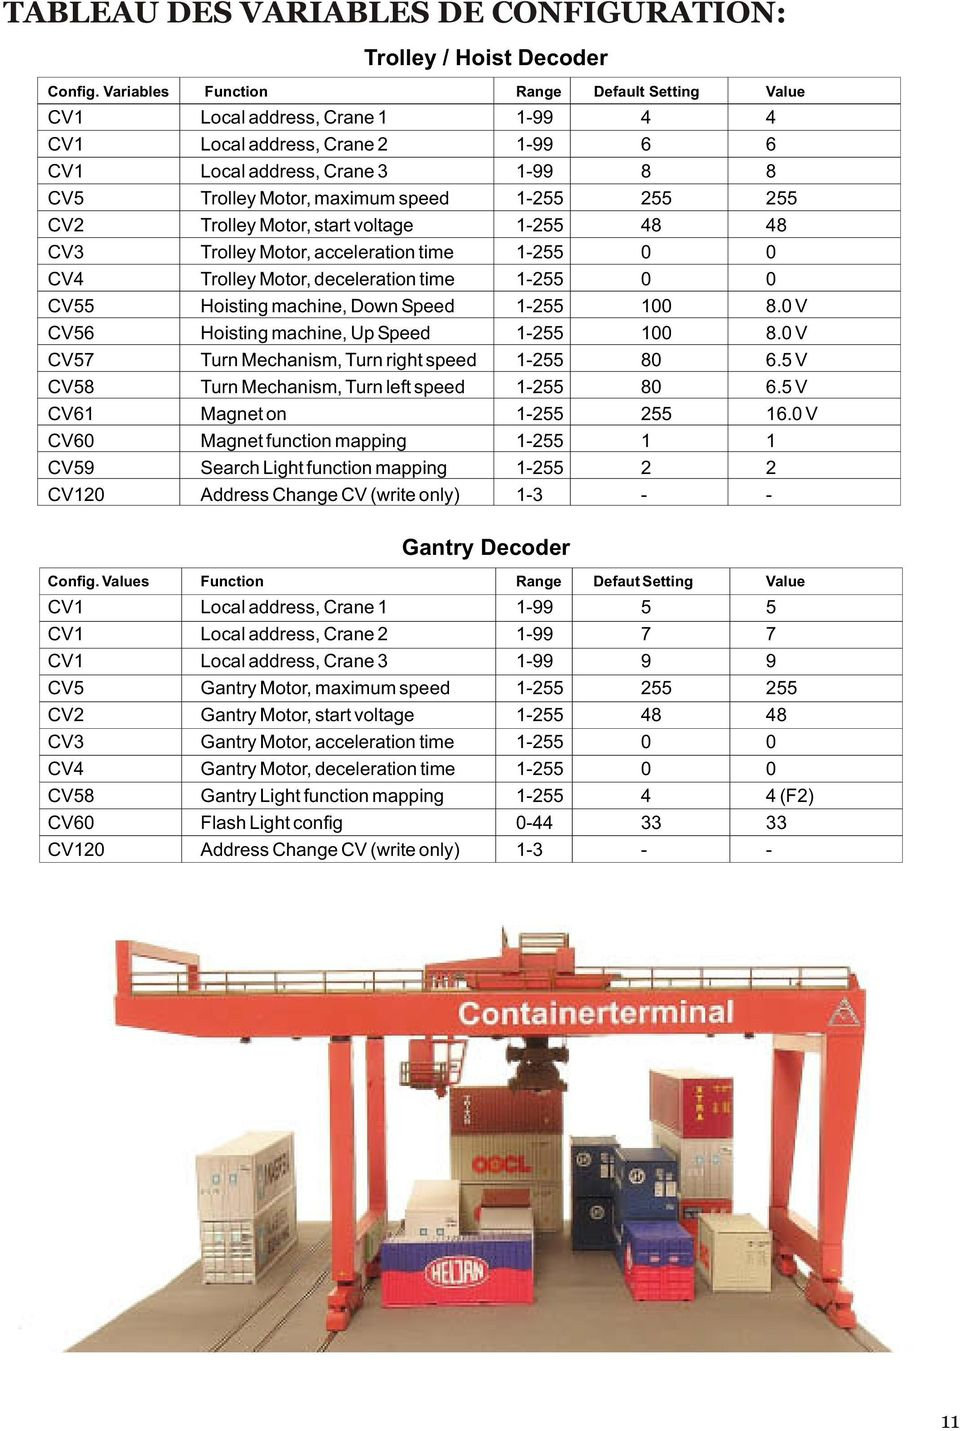 CV2 Trolley otor, start voltage 1-255 48 48 CV3 Trolley otor, acceleration time 1-255 0 0 CV4 Trolley otor, deceleration time 1-255 0 0 CV55 Hoisting machine, Down peed 1-255 100 8.